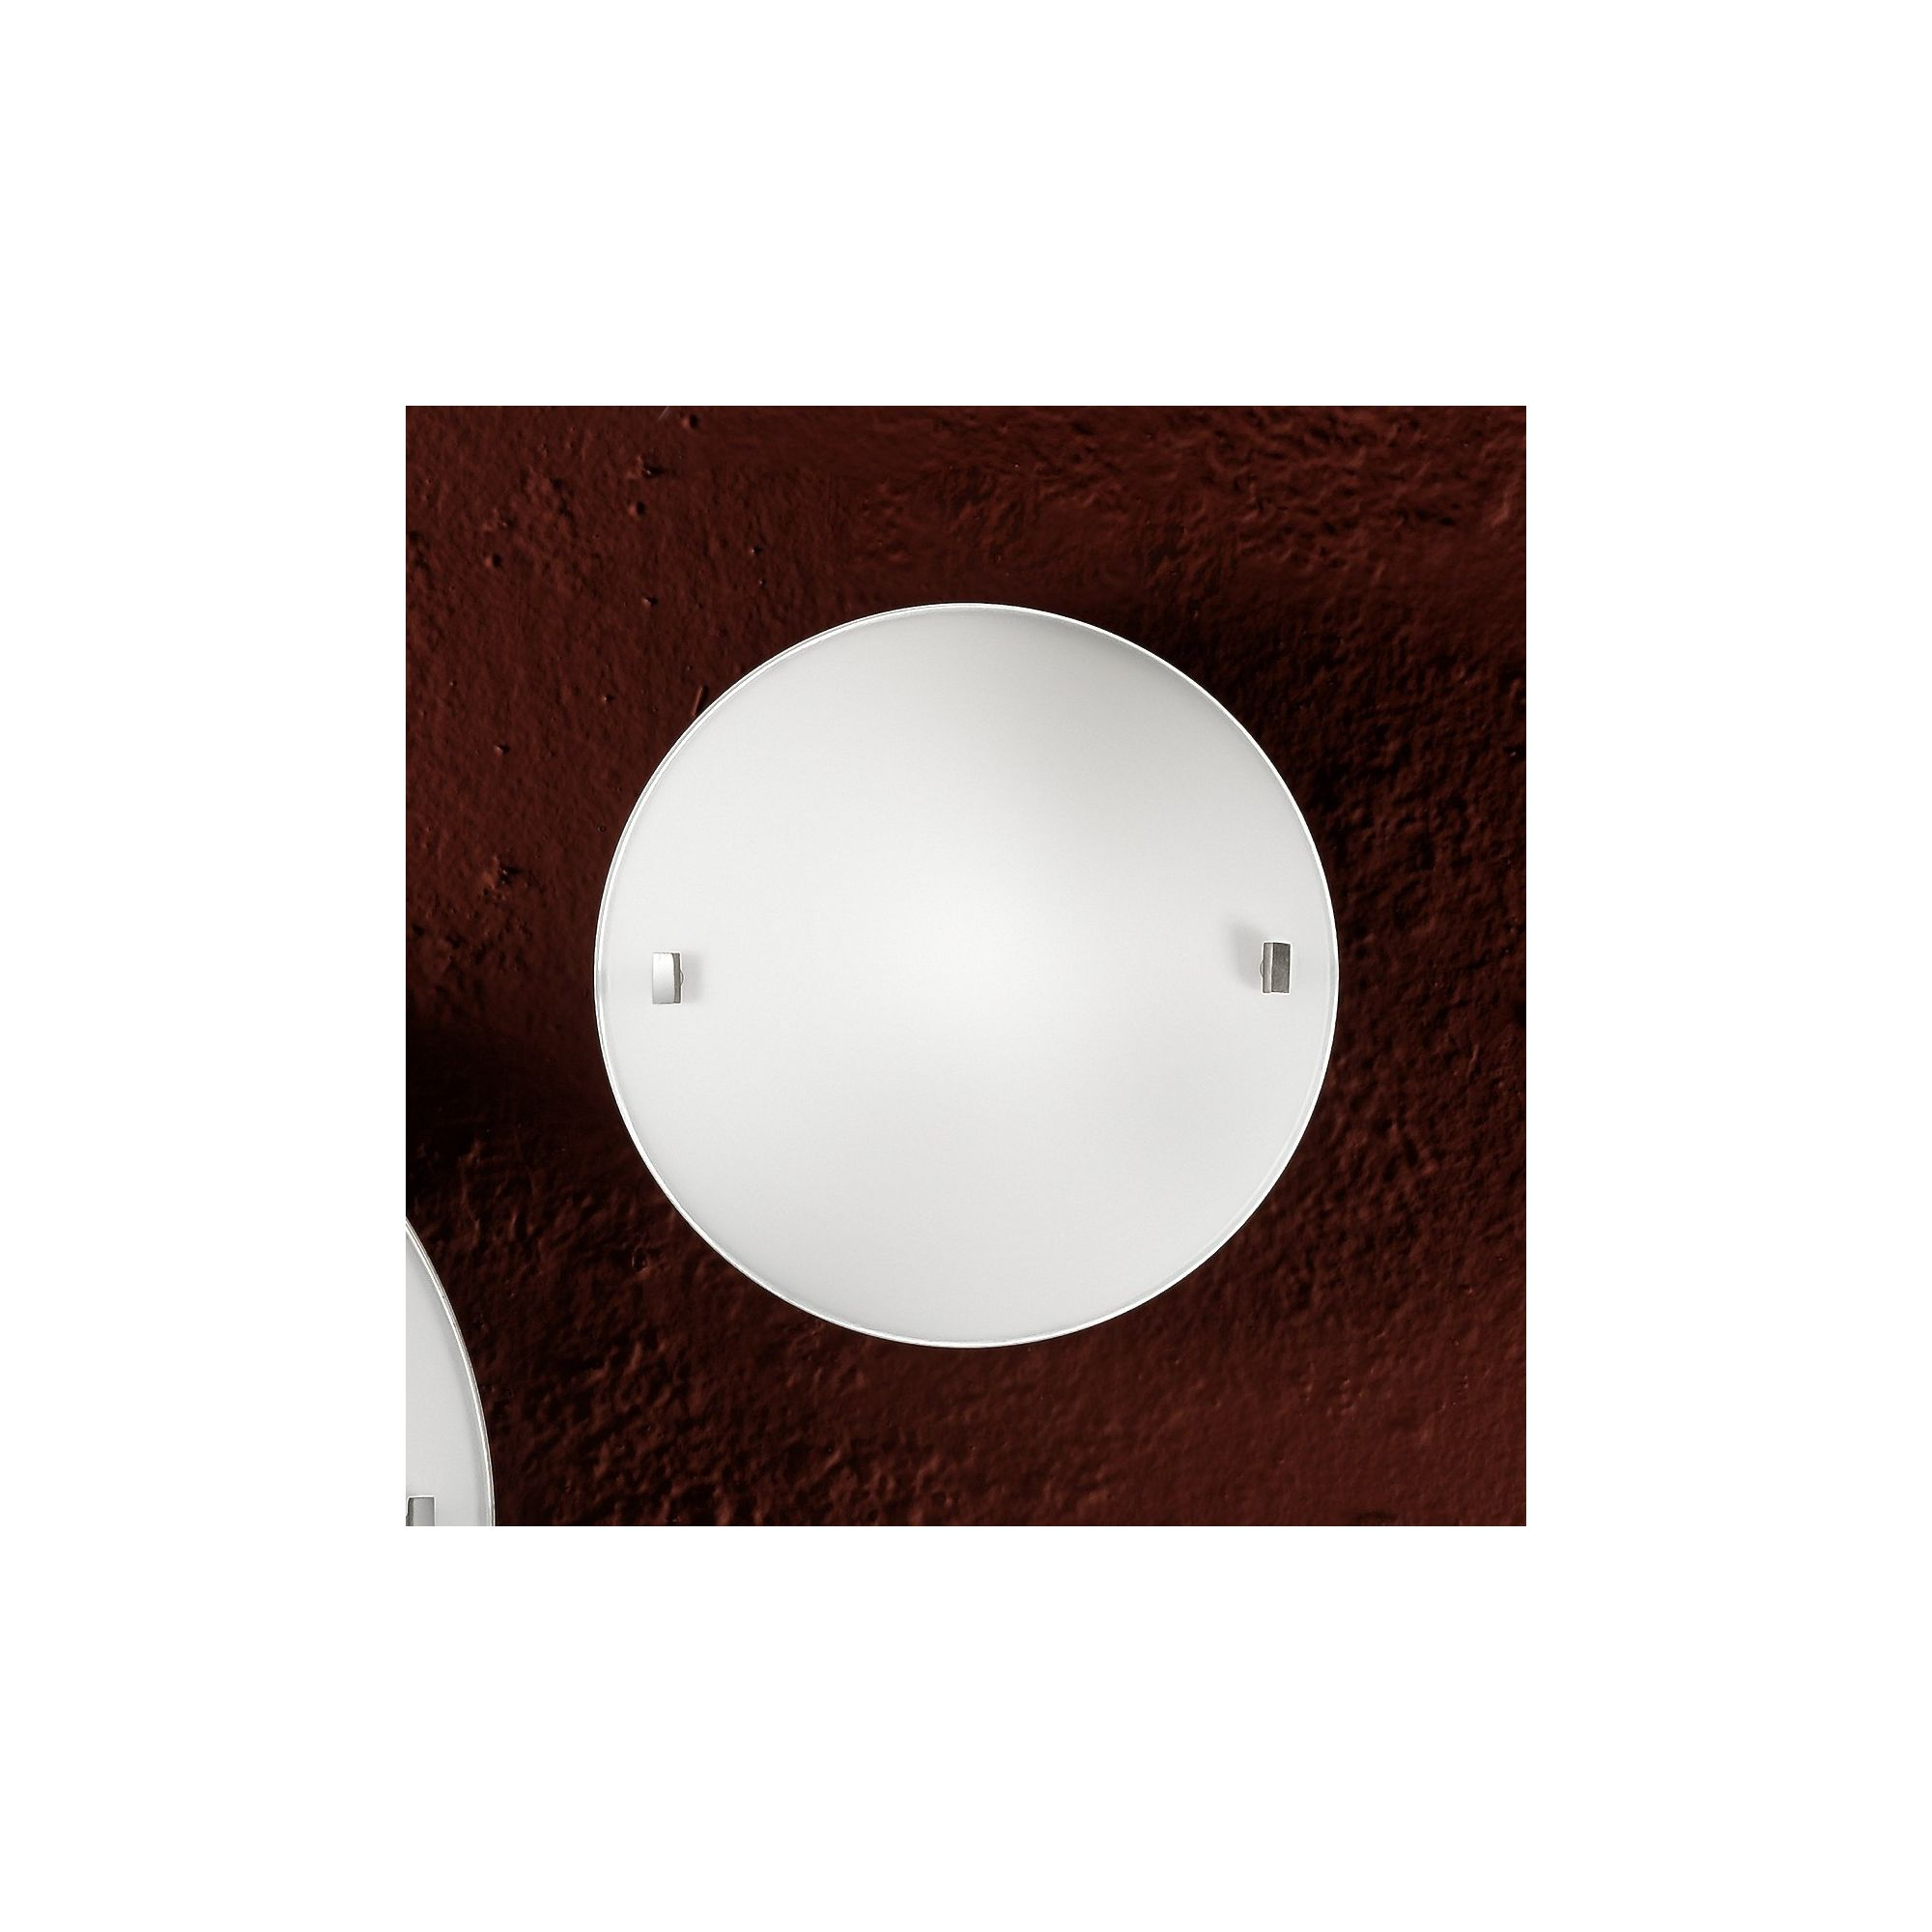 Linea Light Liner One Light Round Ceiling/wall Light - 30cm H X 30cm W X 8.3cm D